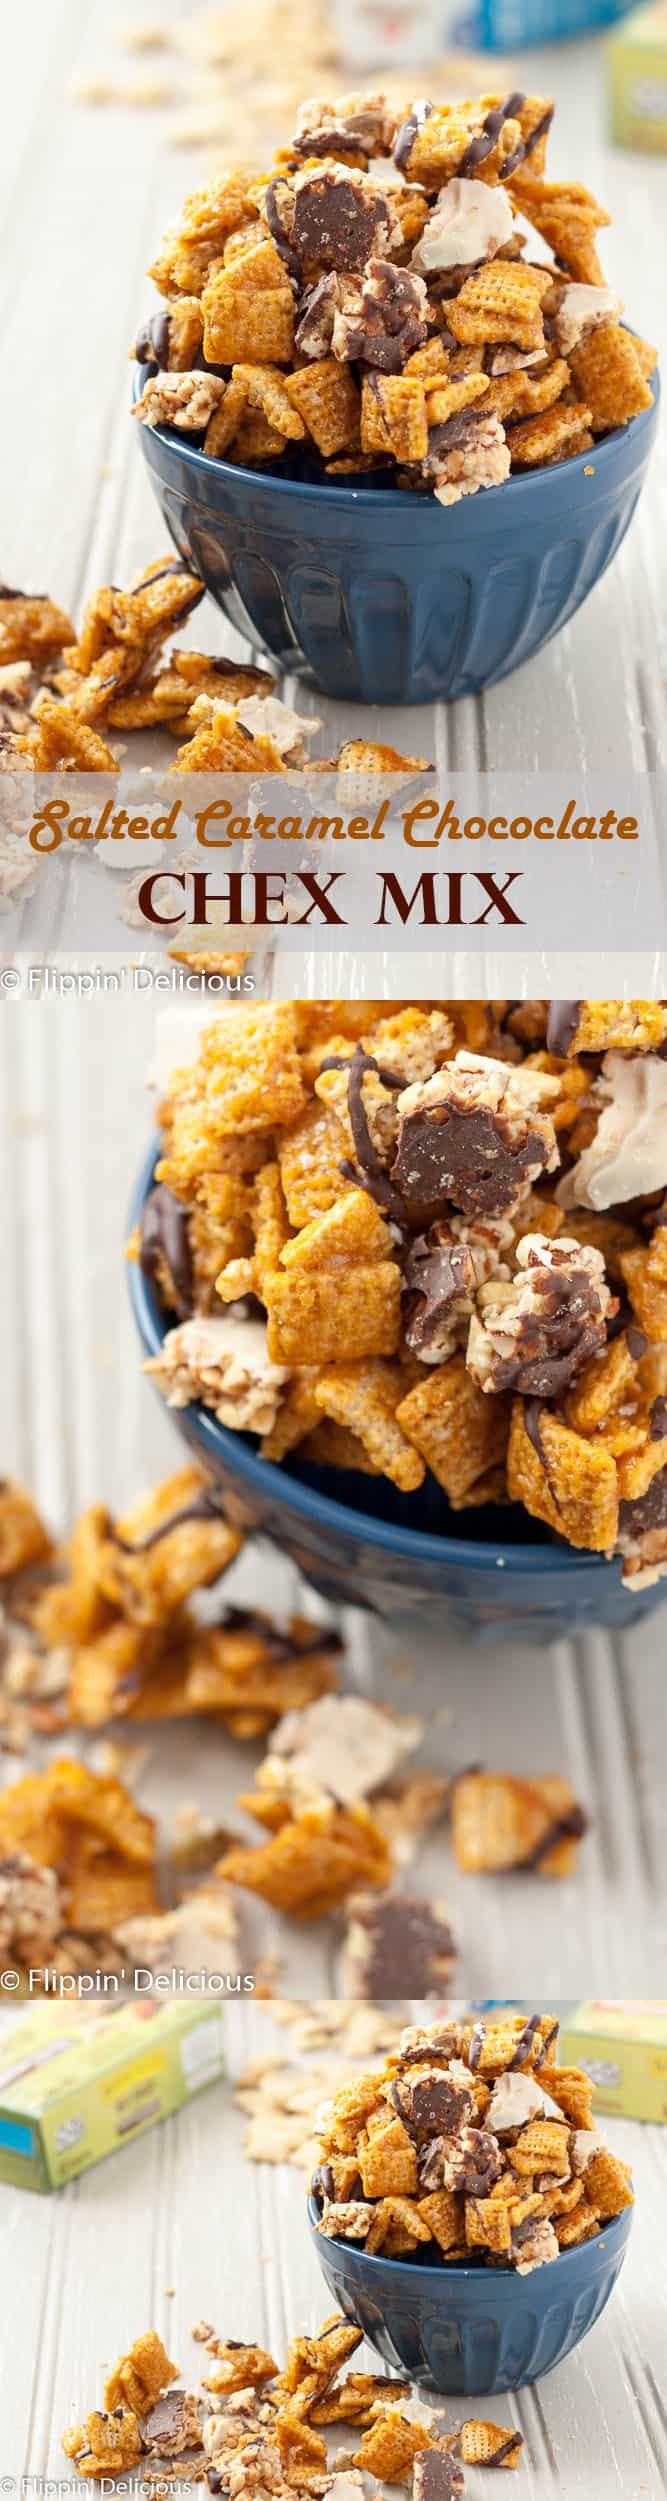 This Salted Caramel Chocolate Chex Mix makes the perfect indulgent late night snack, and it is naturally gluten-free! (Dairy-free option too.)